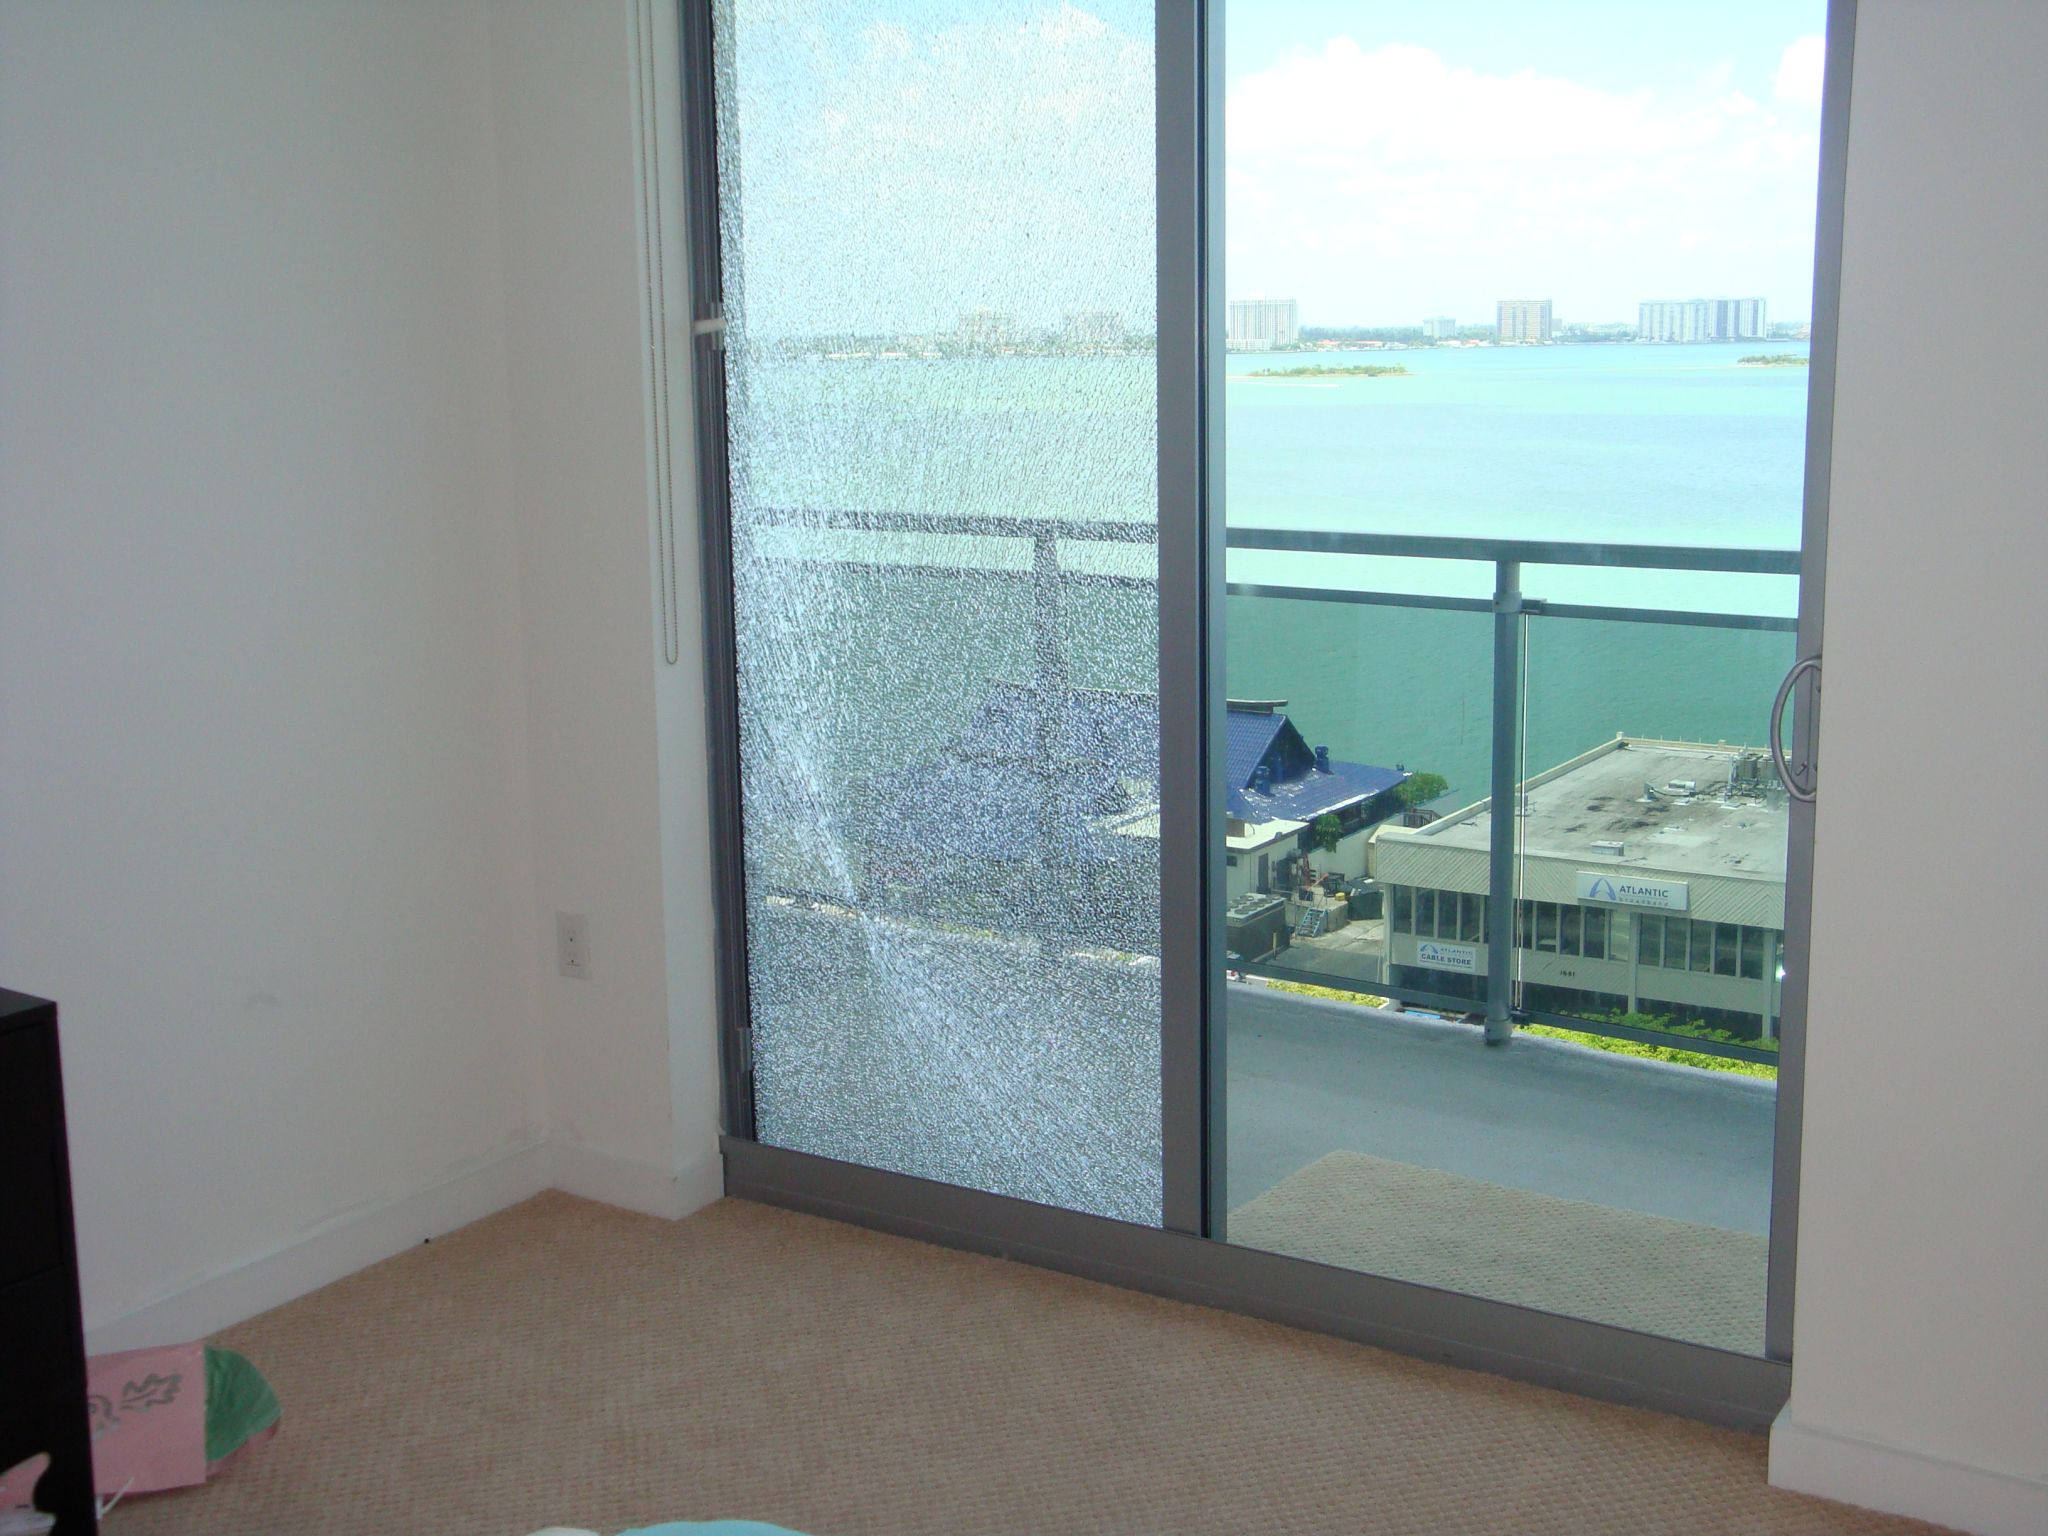 Safety Glazings Are Commonly Required For Sliding Glass Doors Shower And Patio Furniture